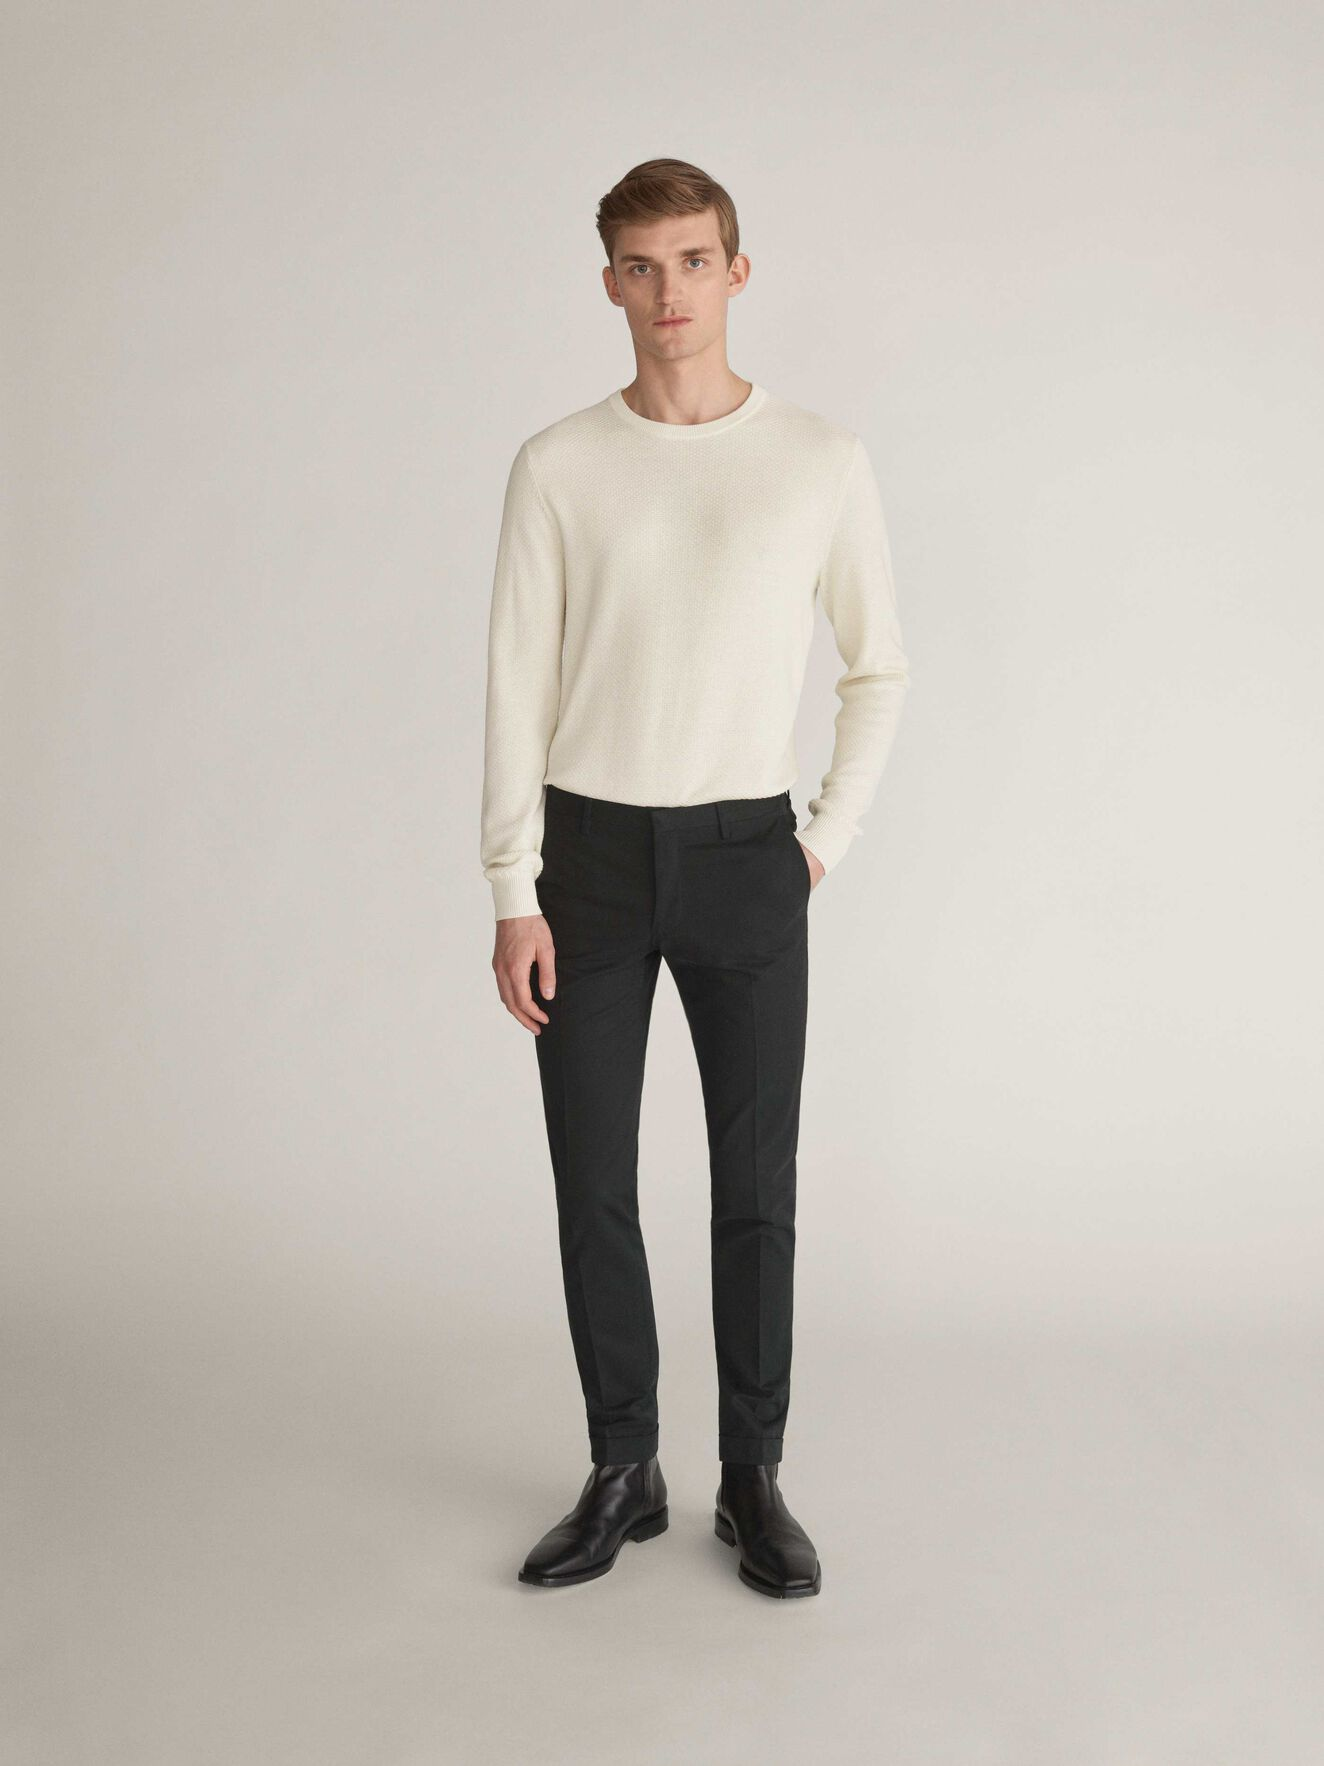 Tretton Trousers in Black from Tiger of Sweden